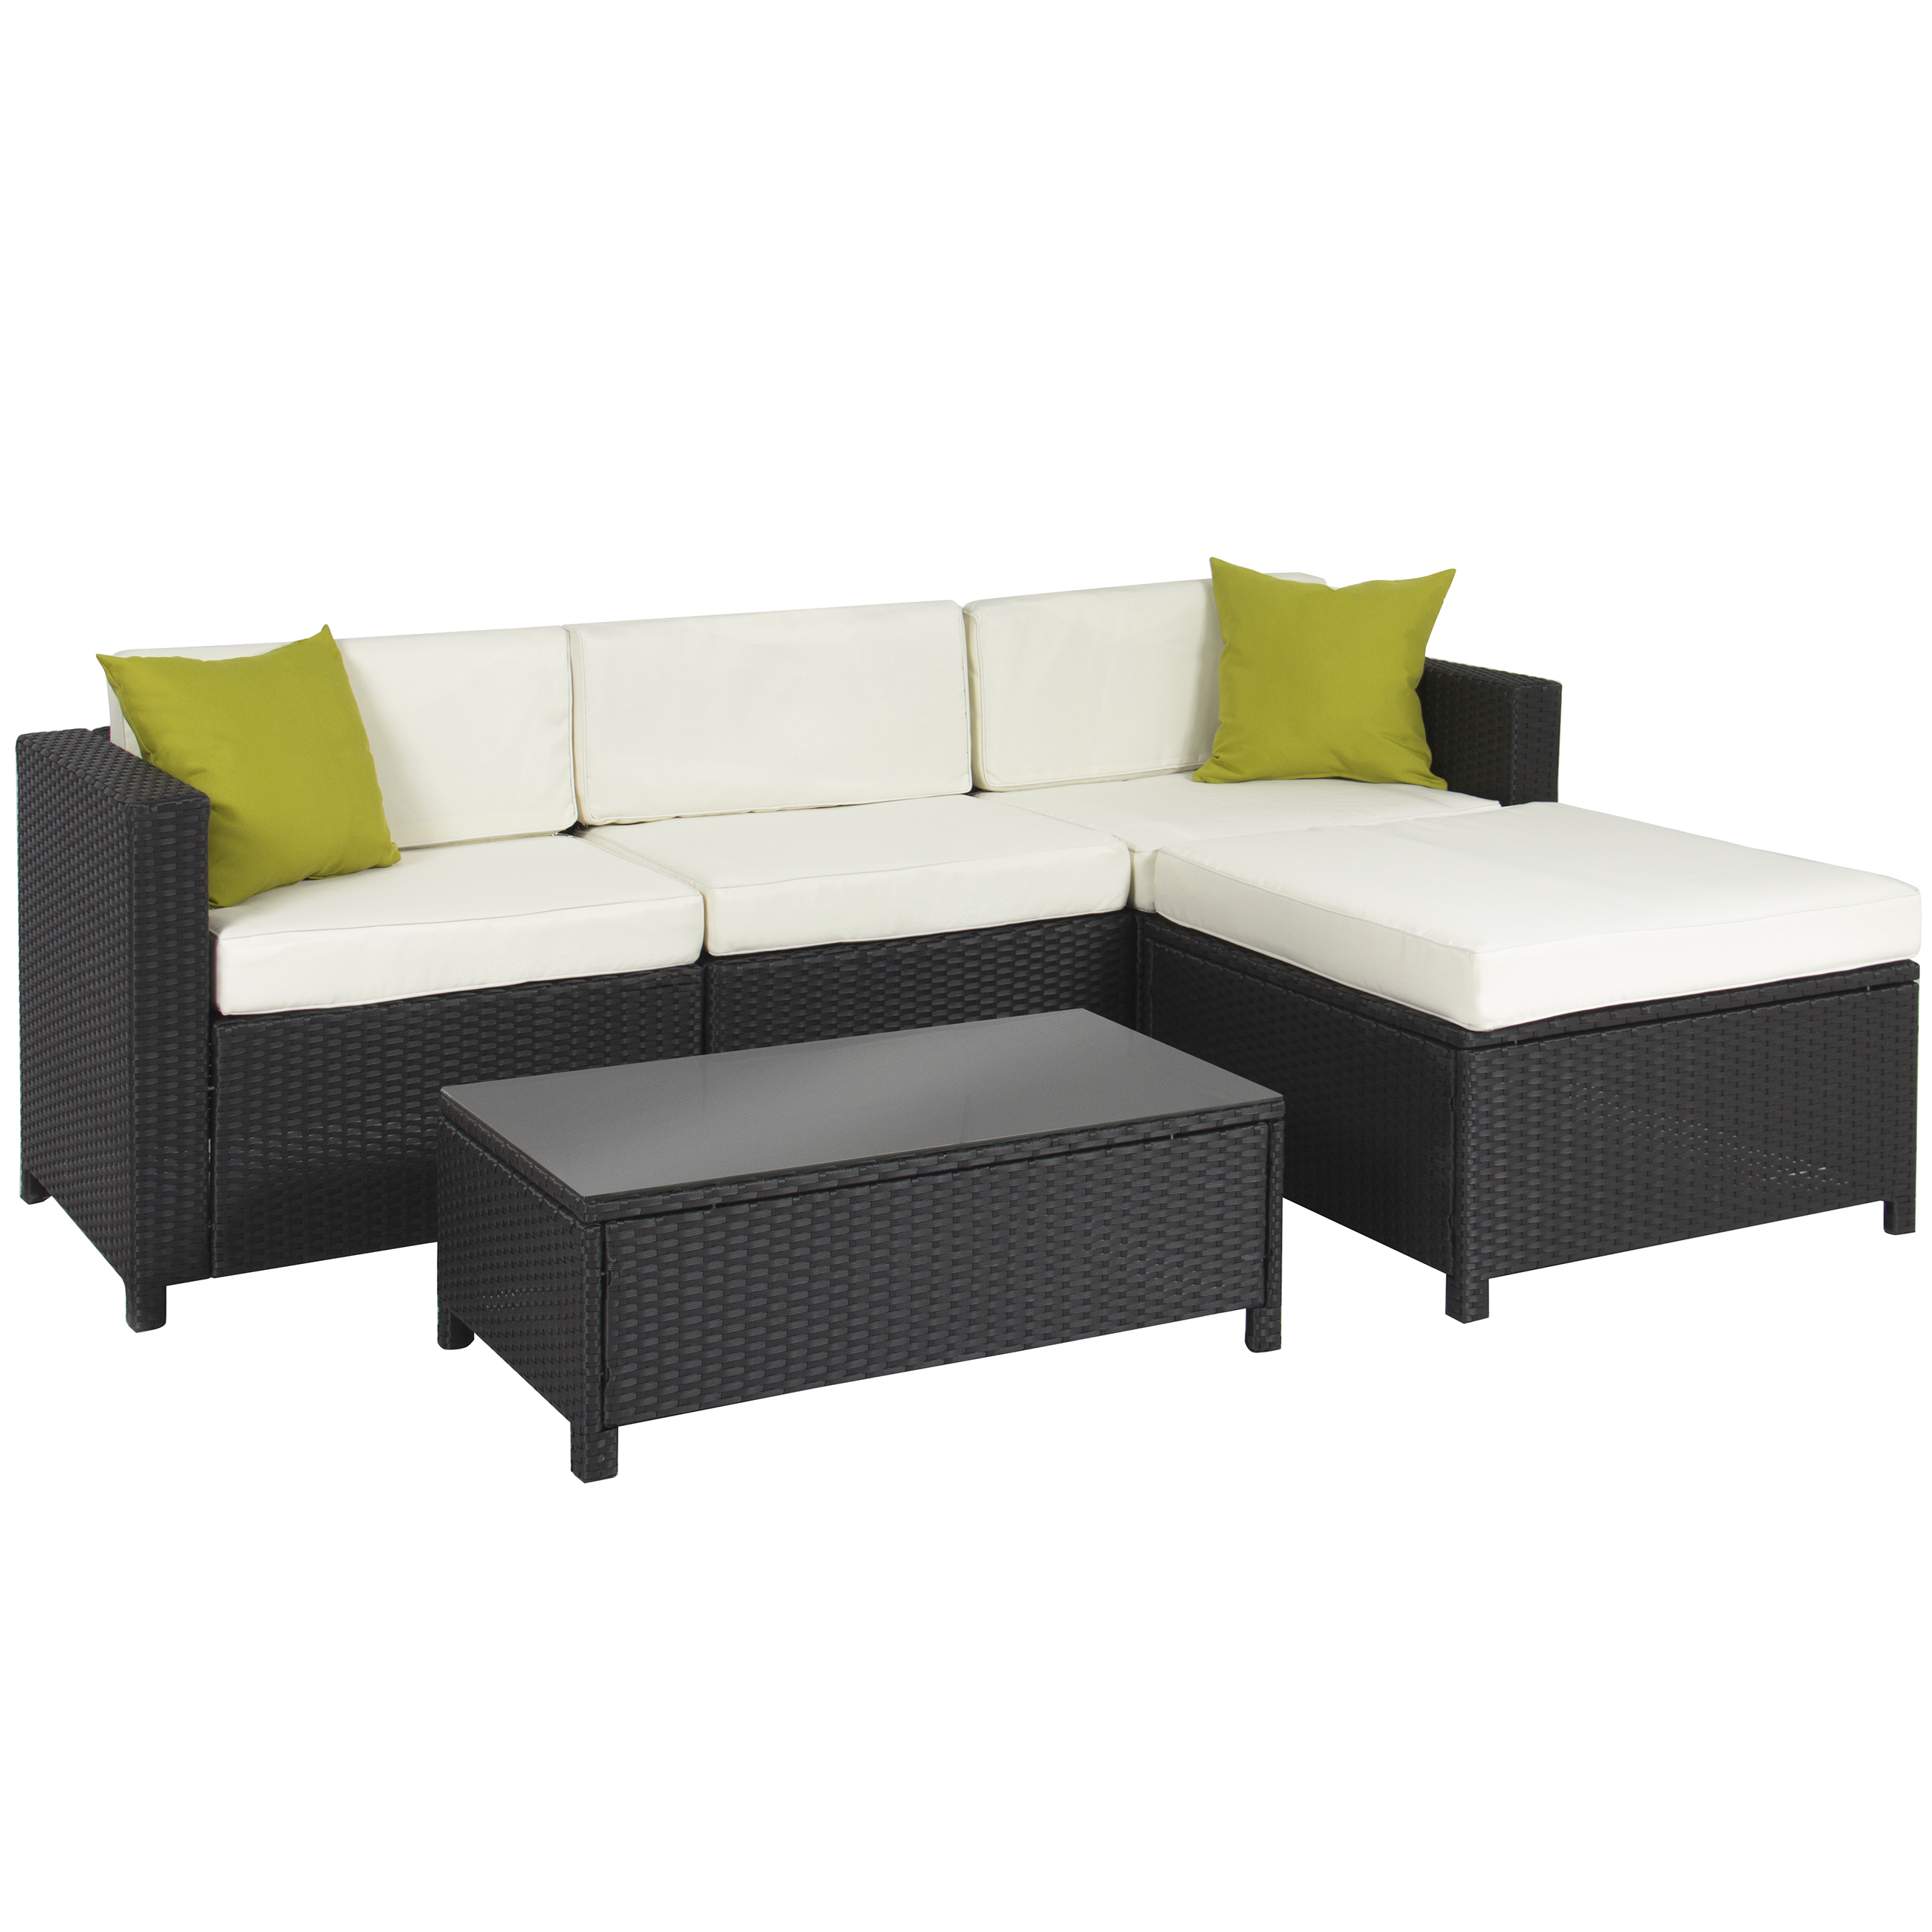 Pleasant Best Choice Products 5 Piece Modular Wicker Patio Sectional Set W Glass Tabletop Removable Cushion Covers Black Walmart Com Inzonedesignstudio Interior Chair Design Inzonedesignstudiocom